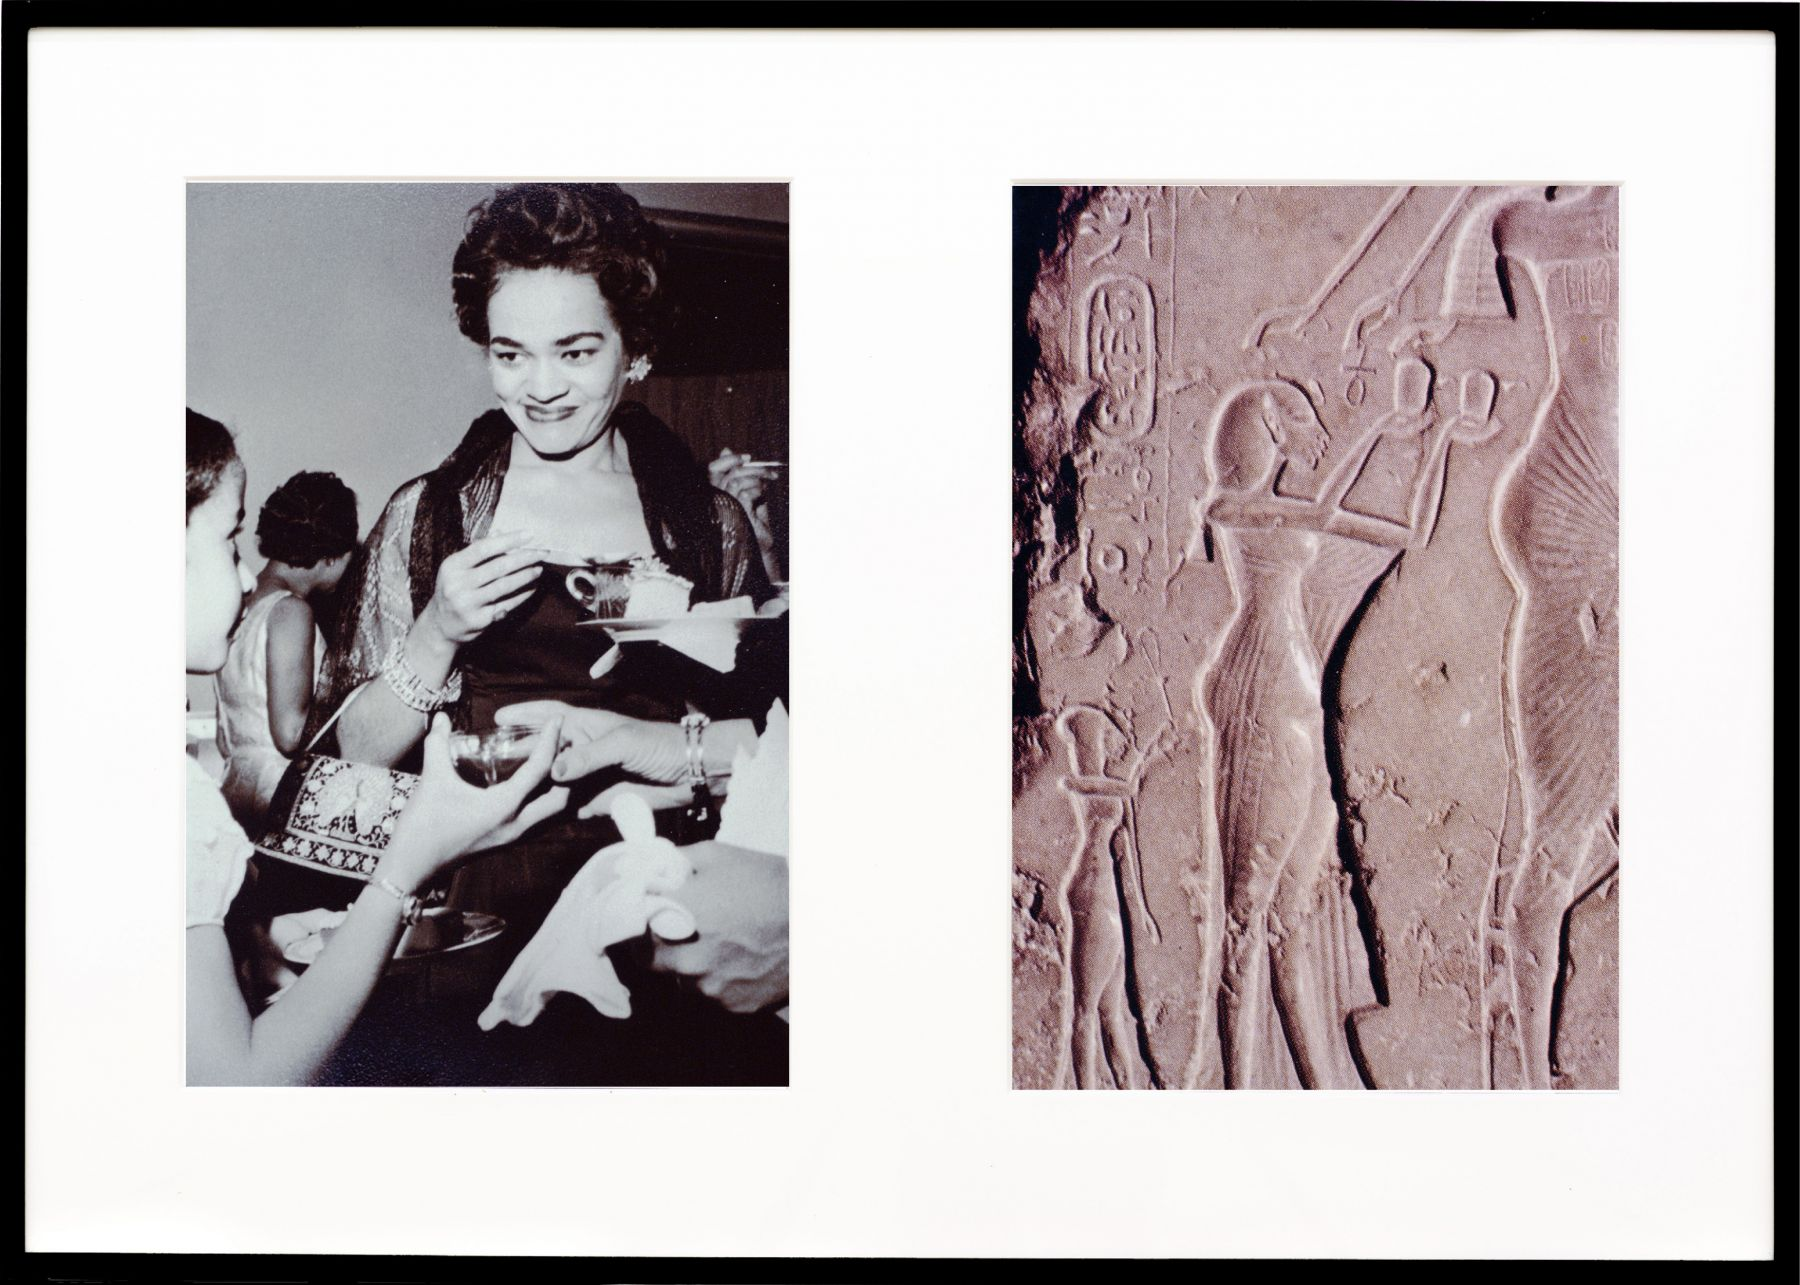 Lorraine O'Grady, Miscegenated Family Album (Ceremonial Occasions II), L: Devonia attending a wedding; R: Nefertiti performing an Aten ritual, 1980/1994